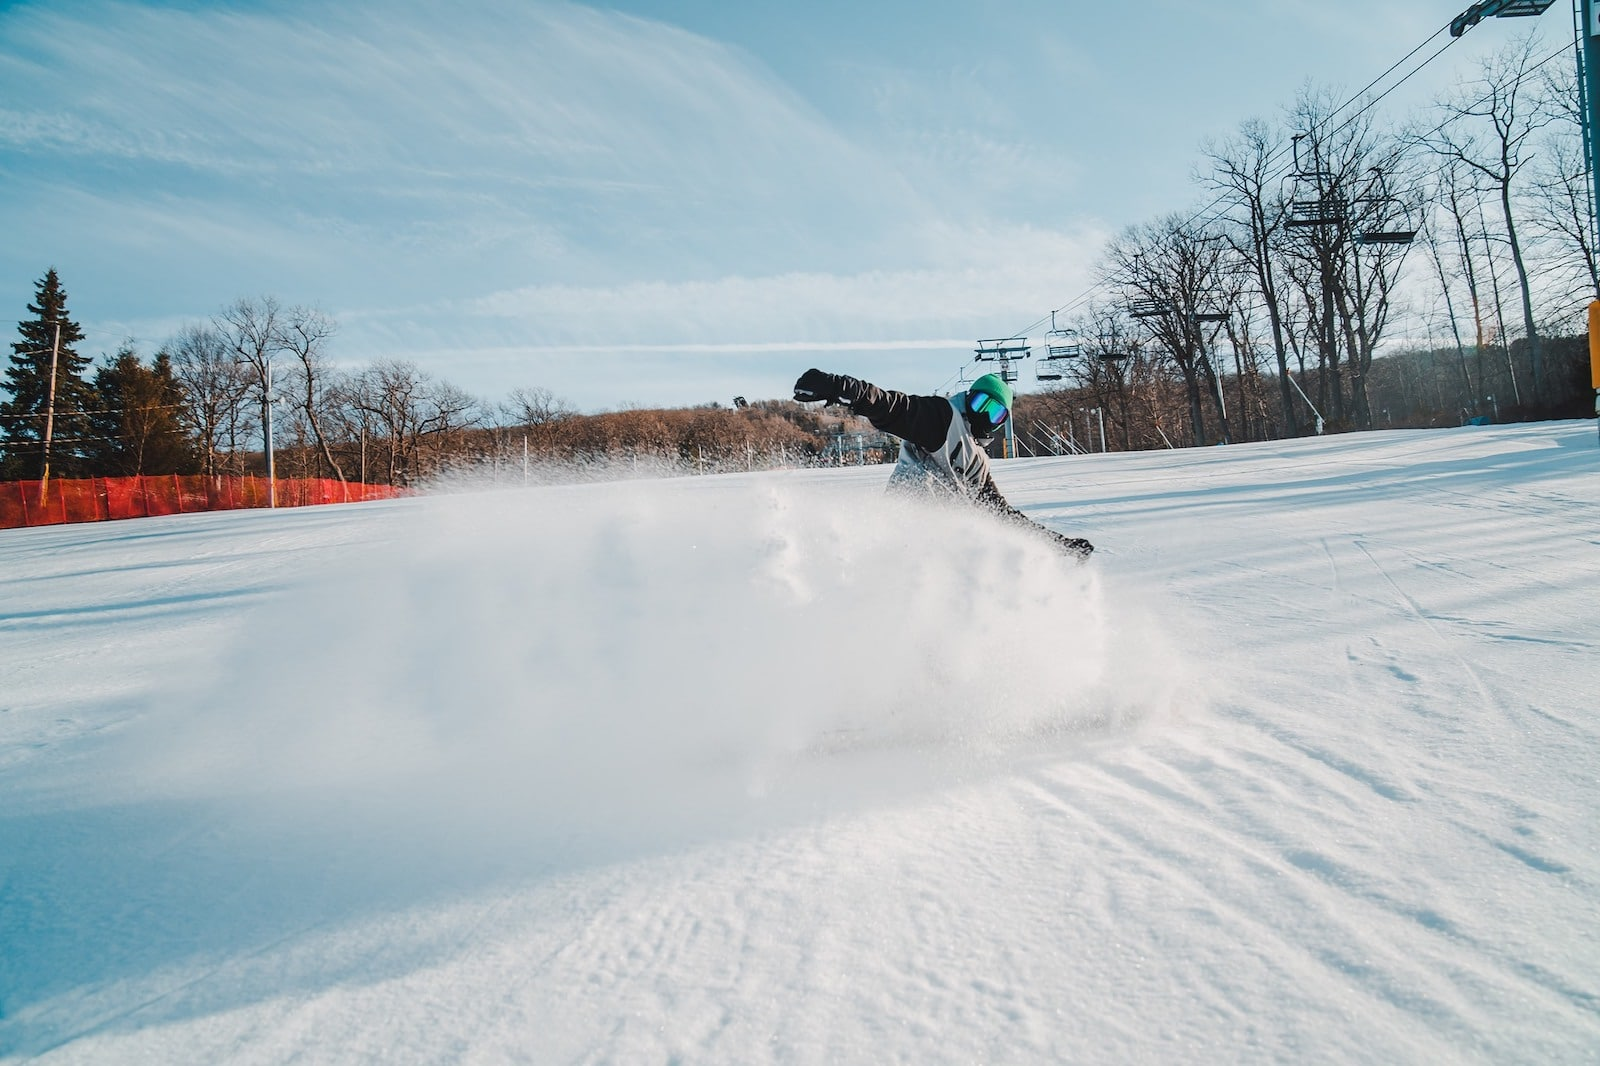 Image of a snowboarder whipping up powdery snow at Camelback Mountain in Pennsylvania